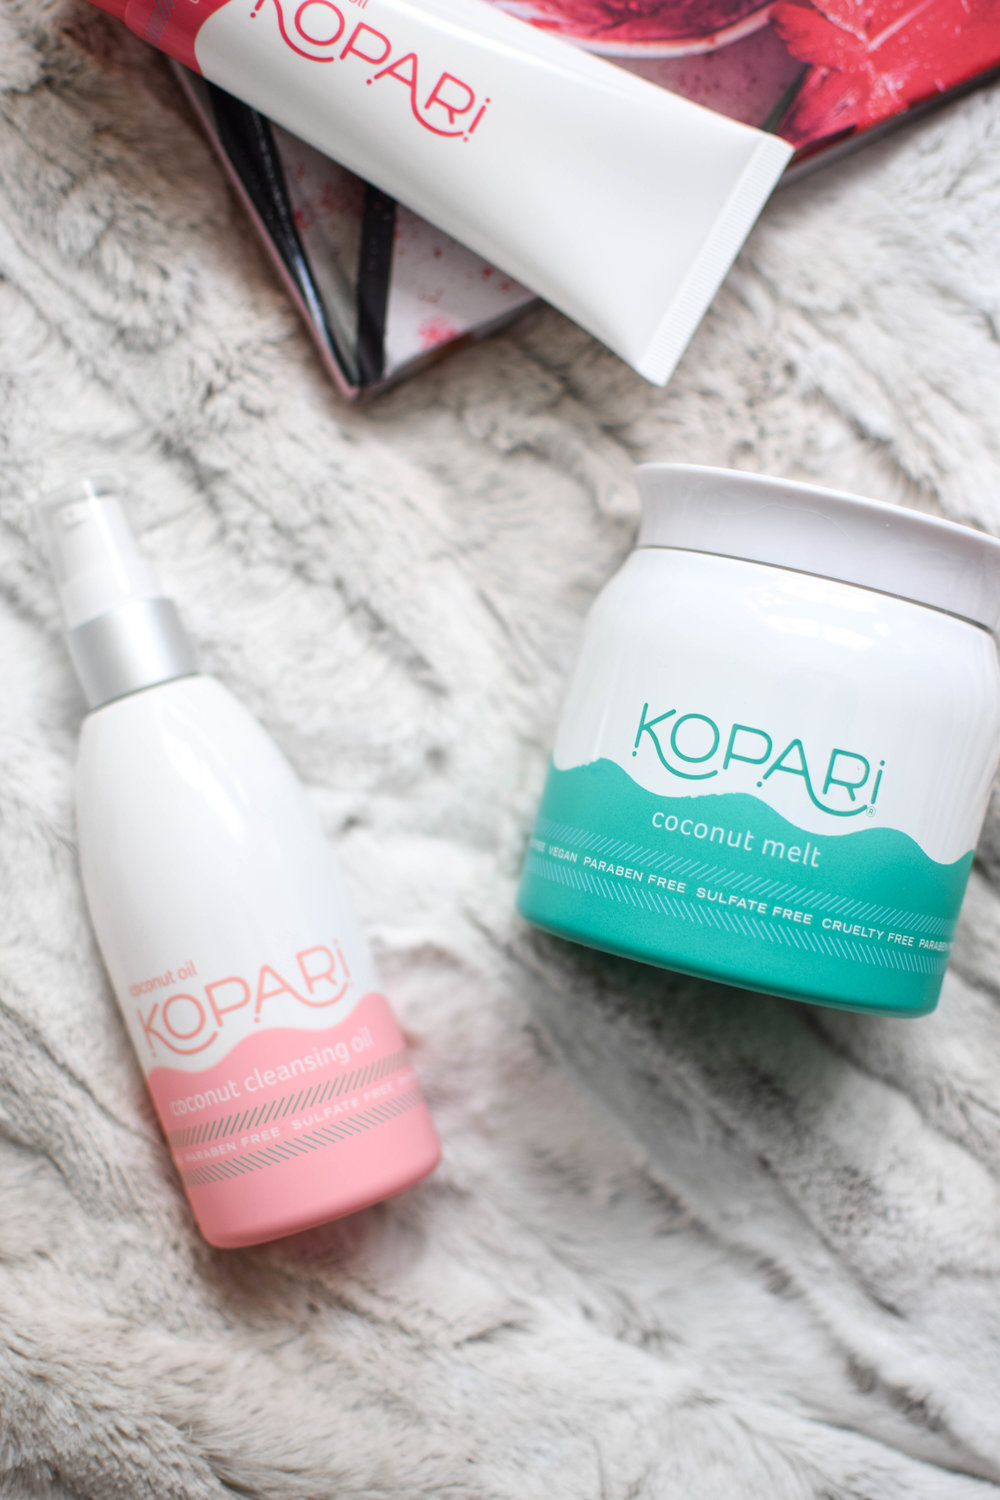 kopari / kopari beauty / natural skincare / organic skincare / coconut oil based skincare products / kopari skincare review